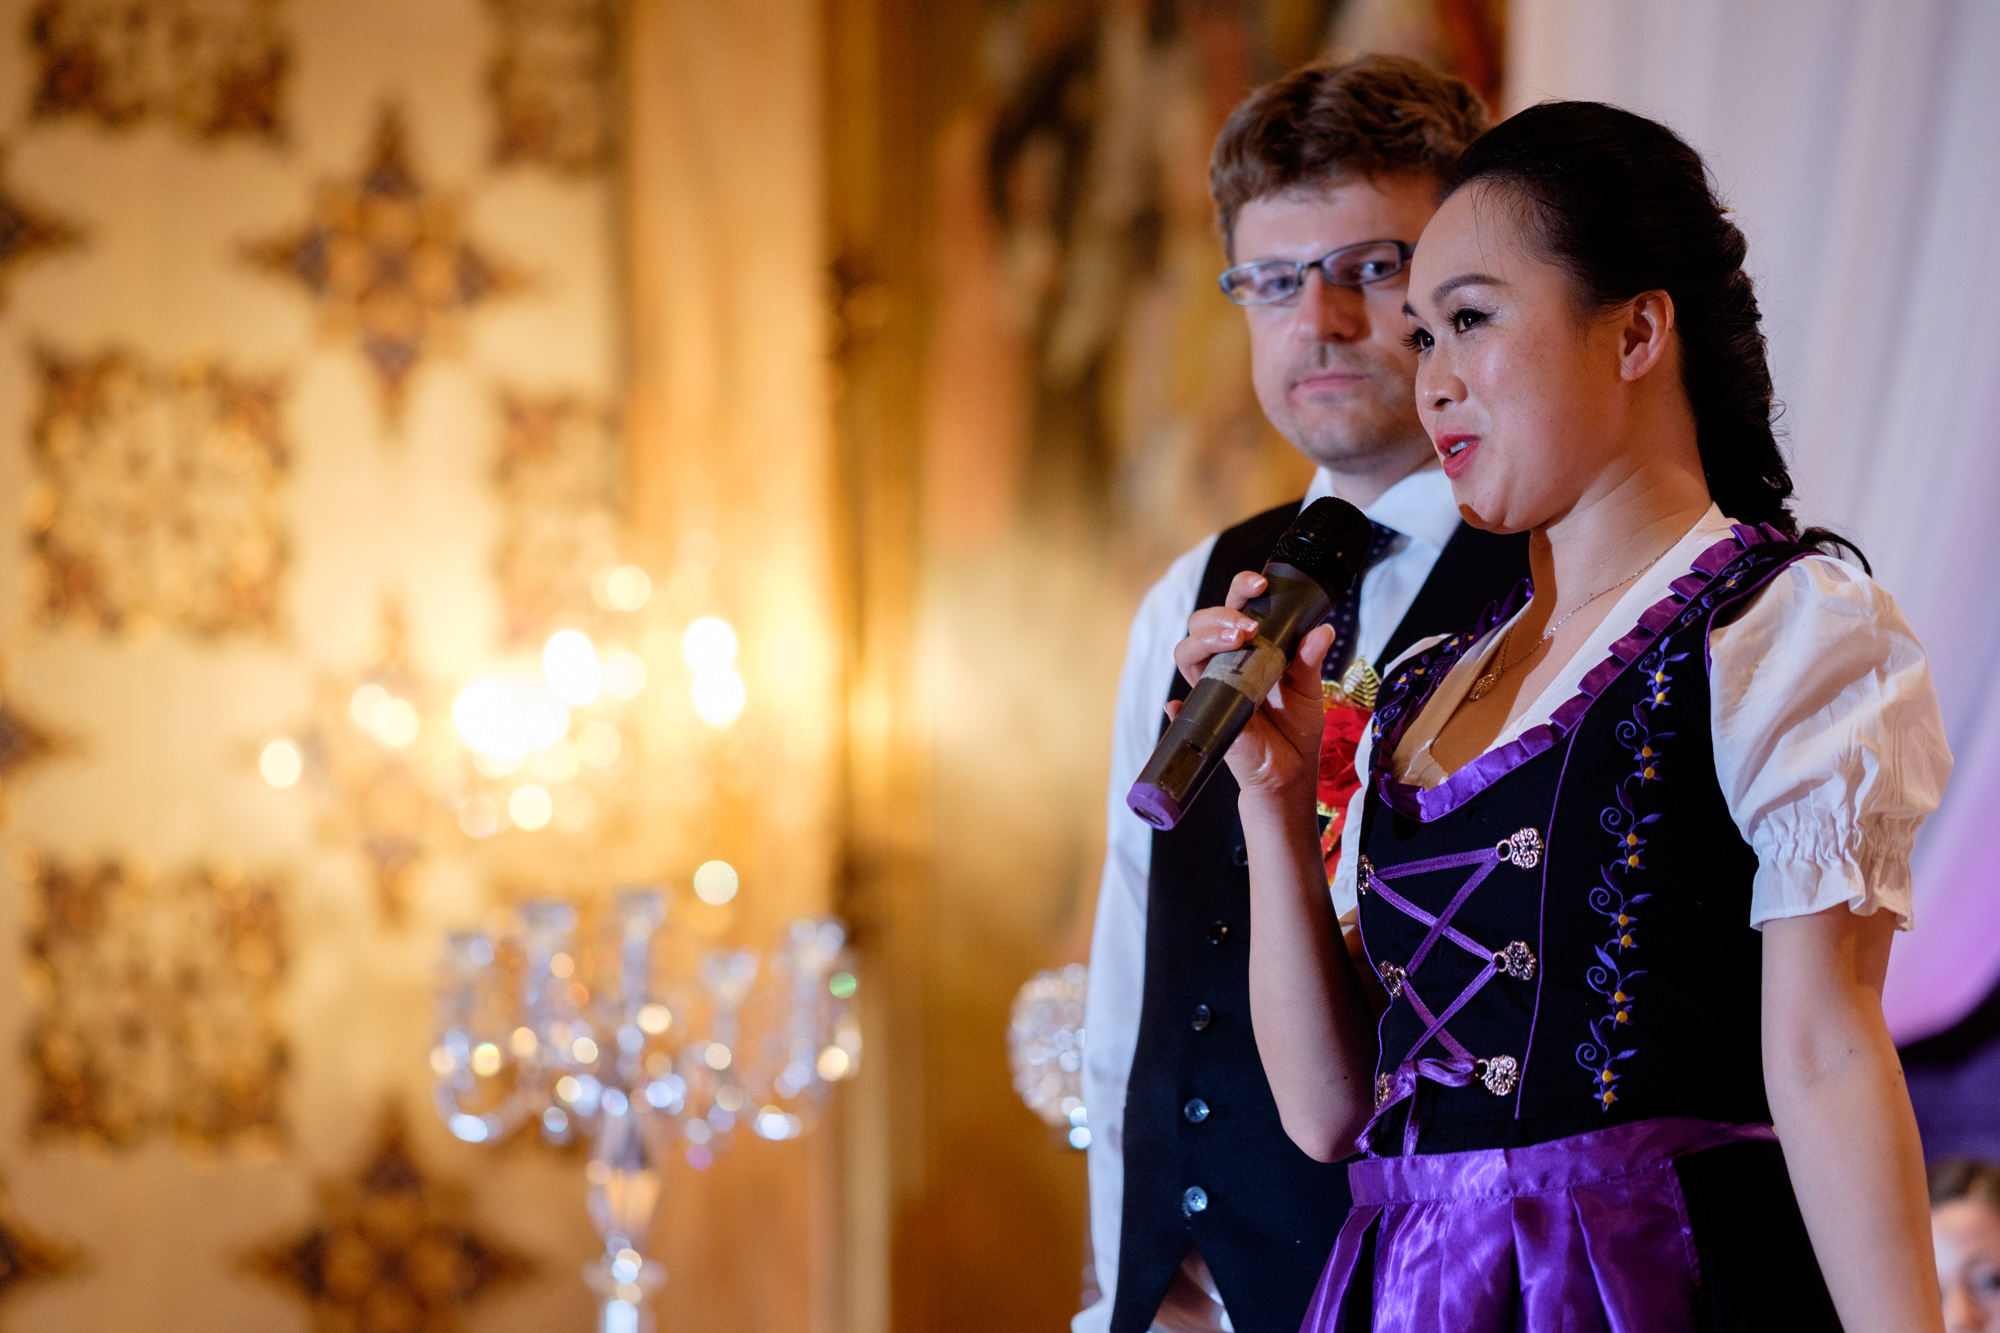 Jing + Rene thank their guests during their wedding speech during the reception.